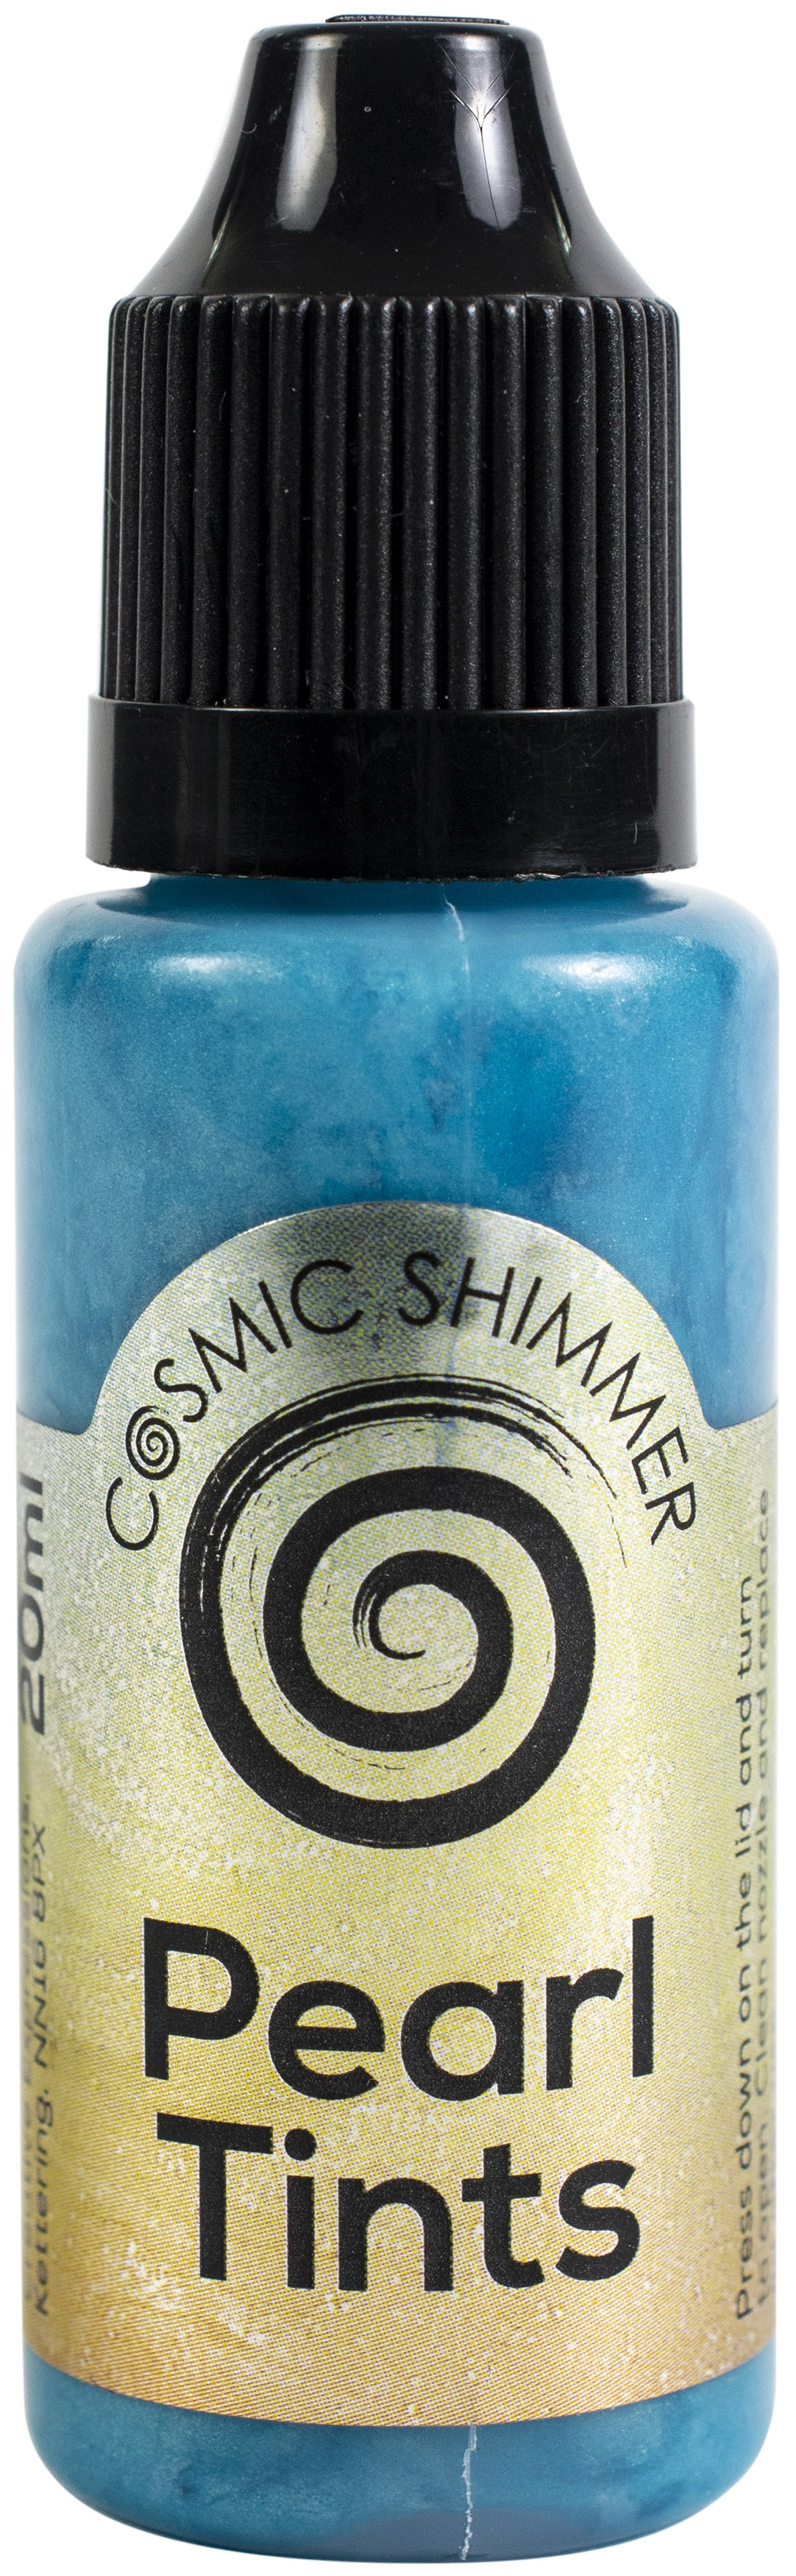 Cosmic Shimmer - Pearl Tints - Majestic Teal